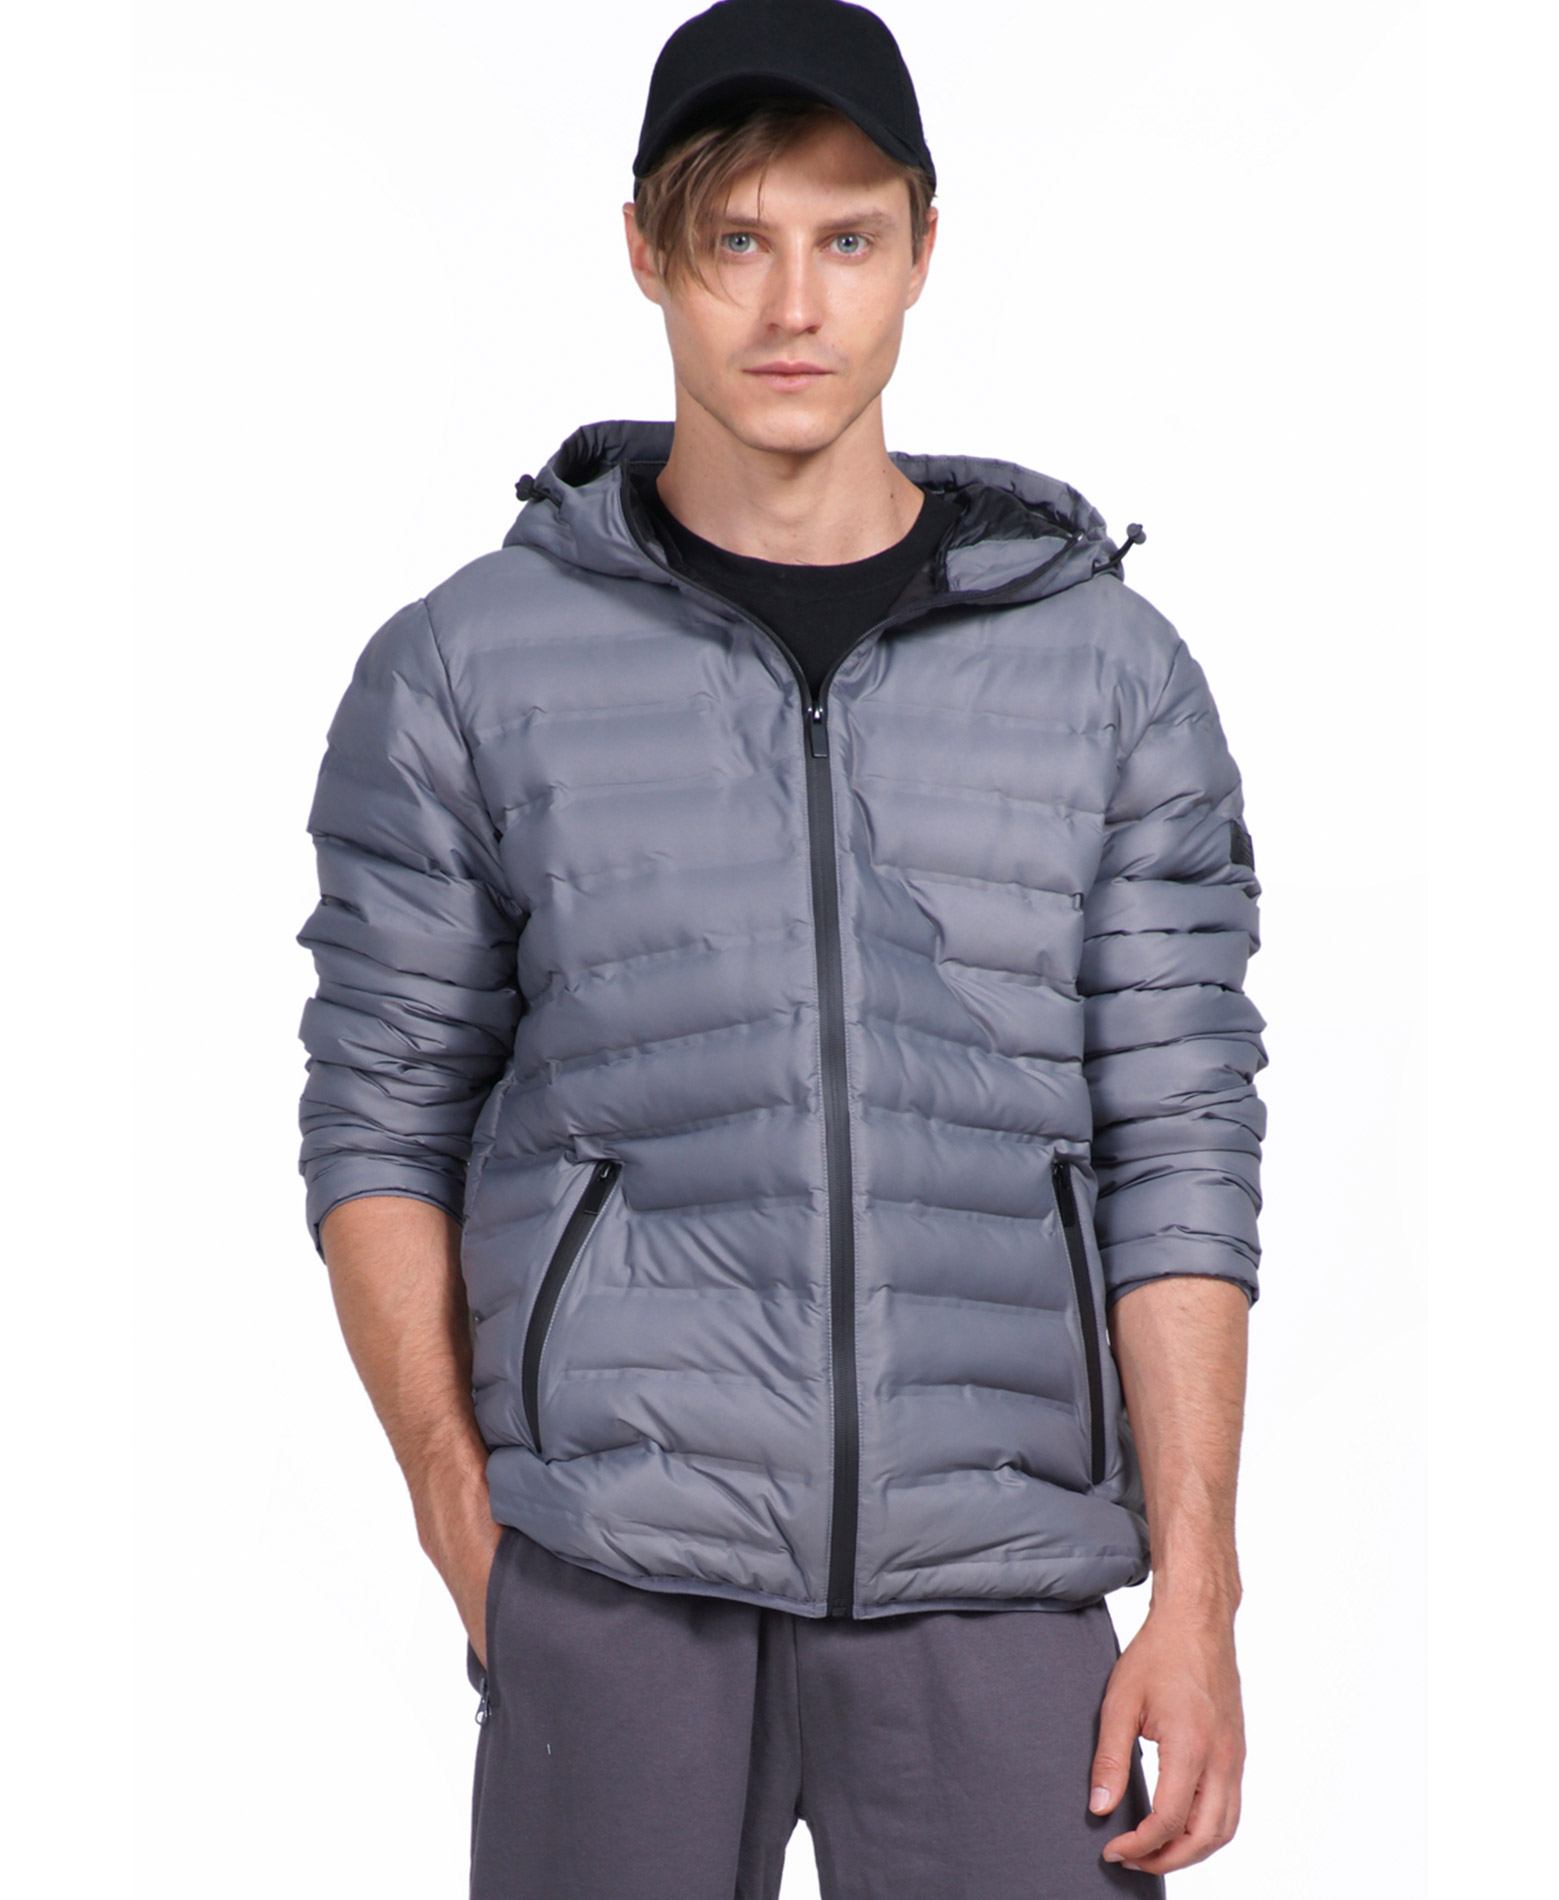 BODY ACTION MEN QUILT PADDED JACKET WITH HOOD 073926-01-03 Γκρί